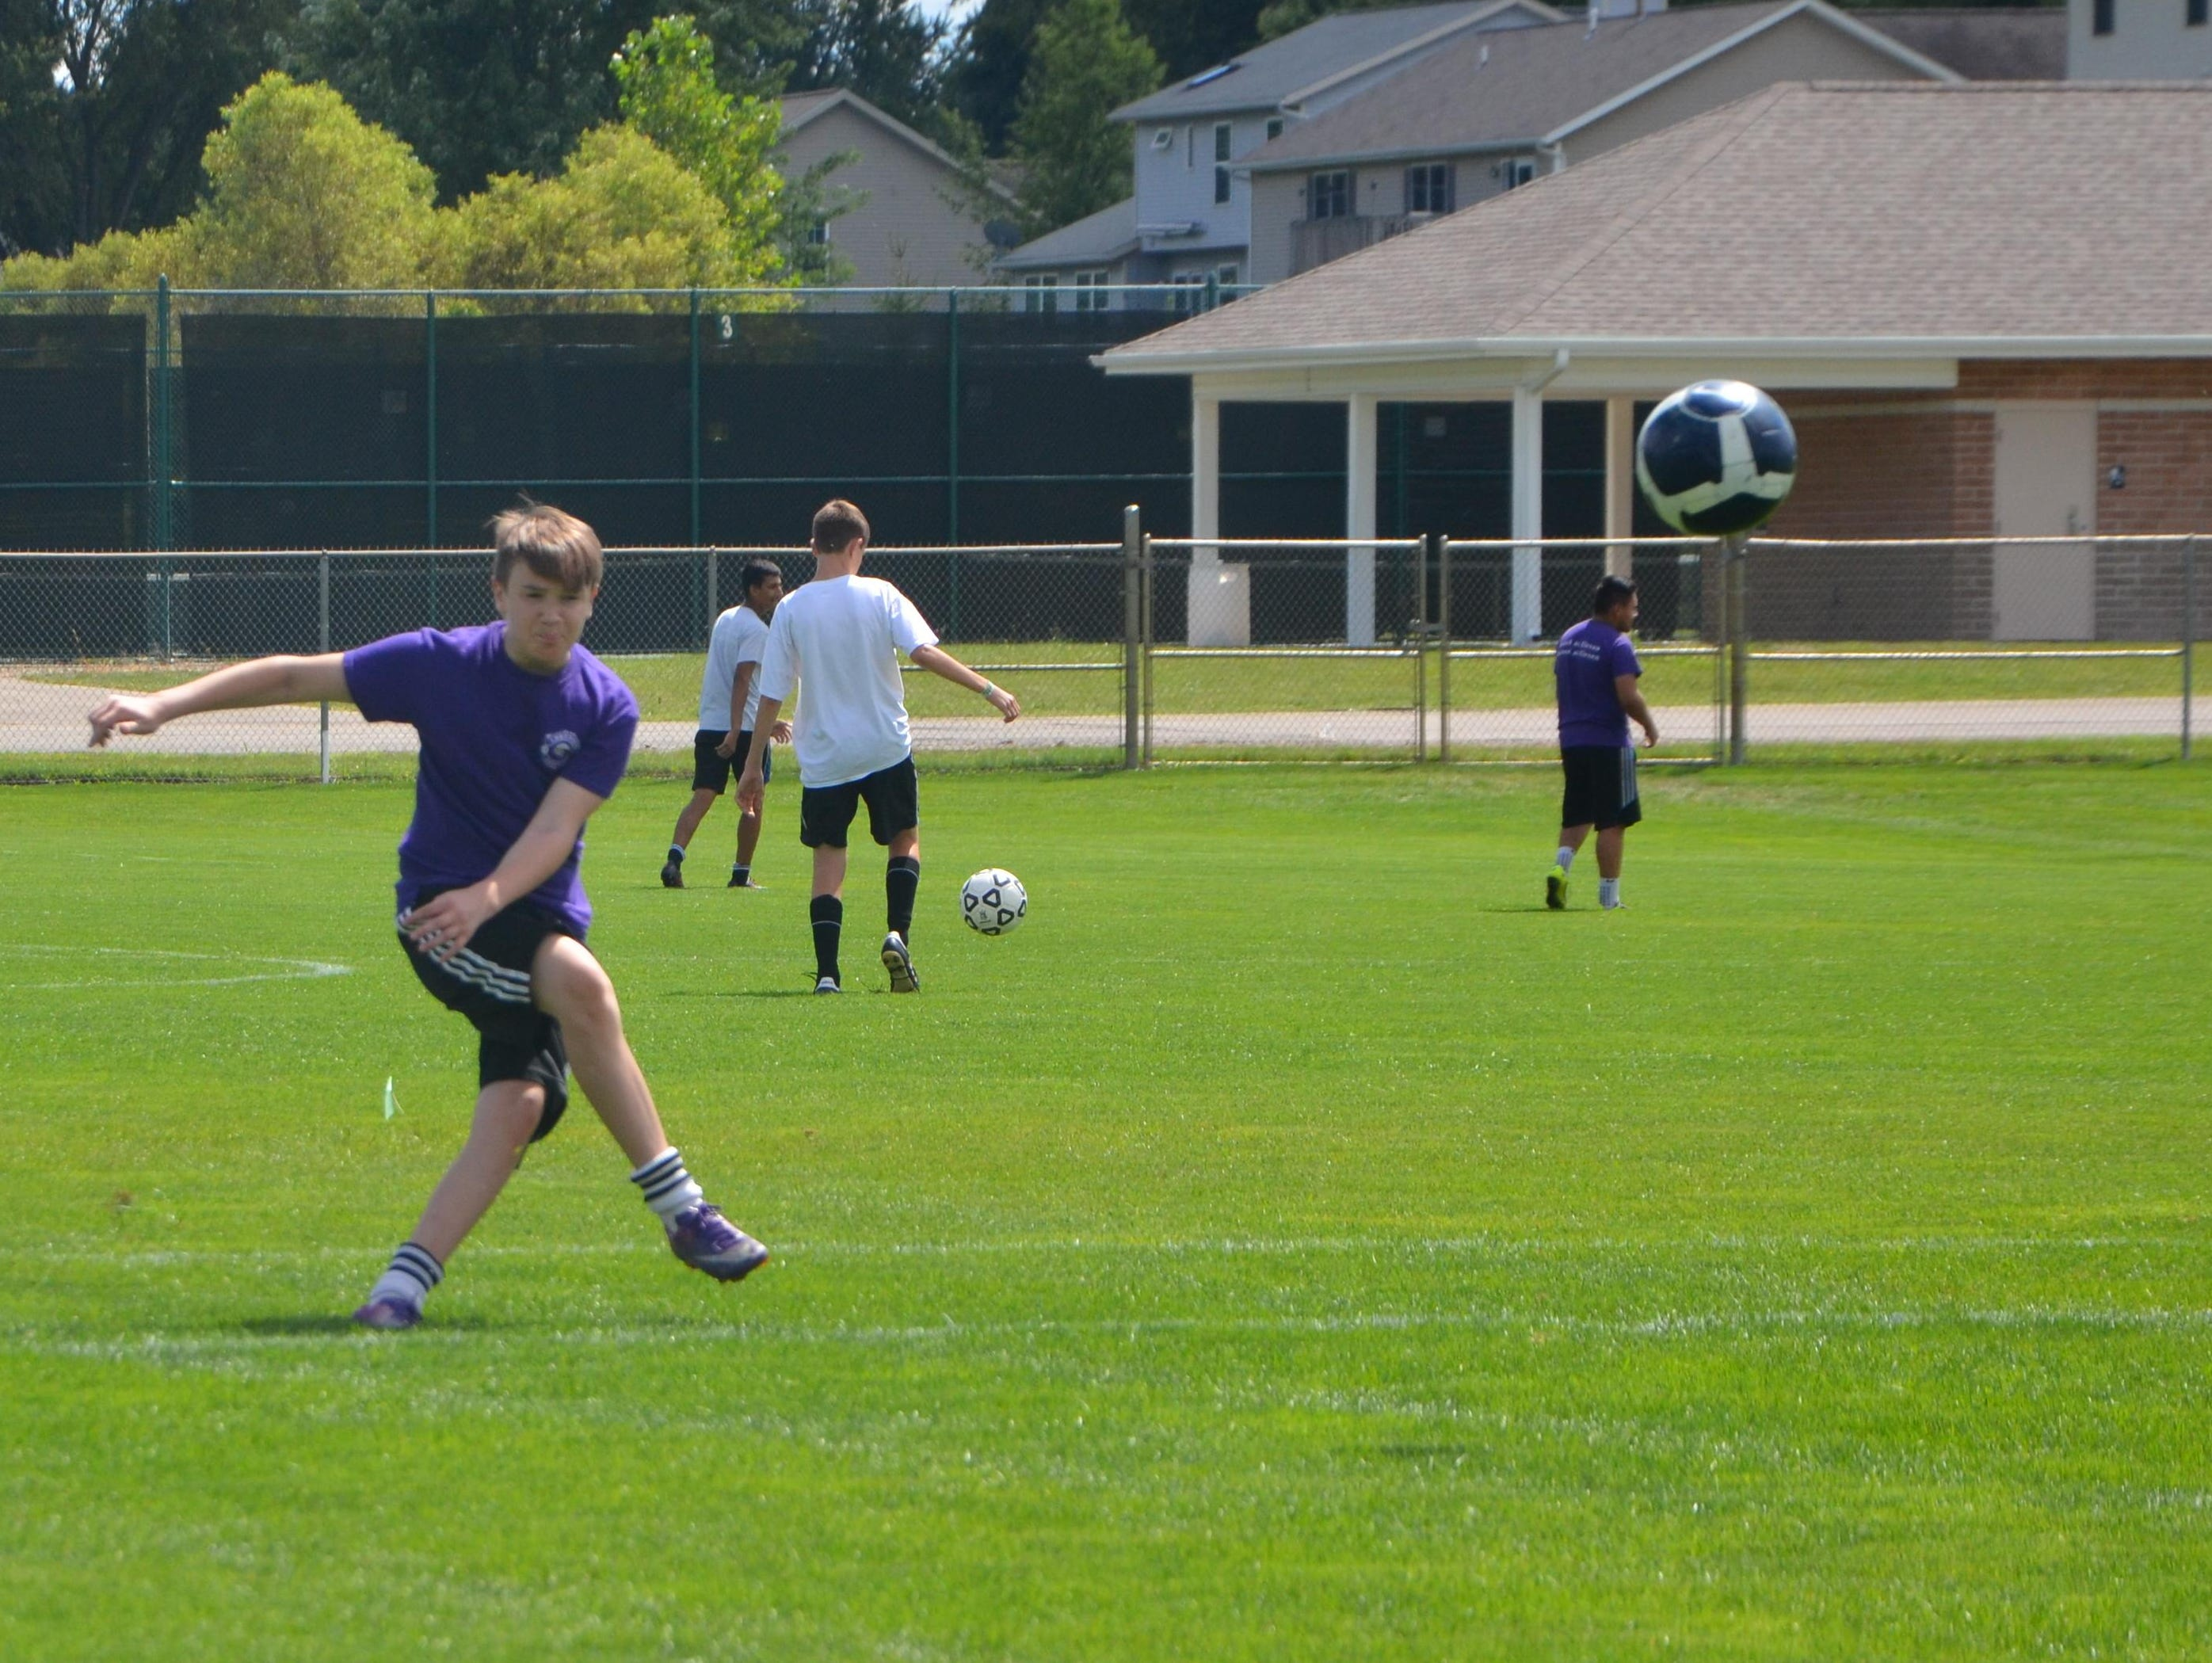 Lakeview's Kevin Mann kicks the ball during the first soccer practice of the season on Wednesday.